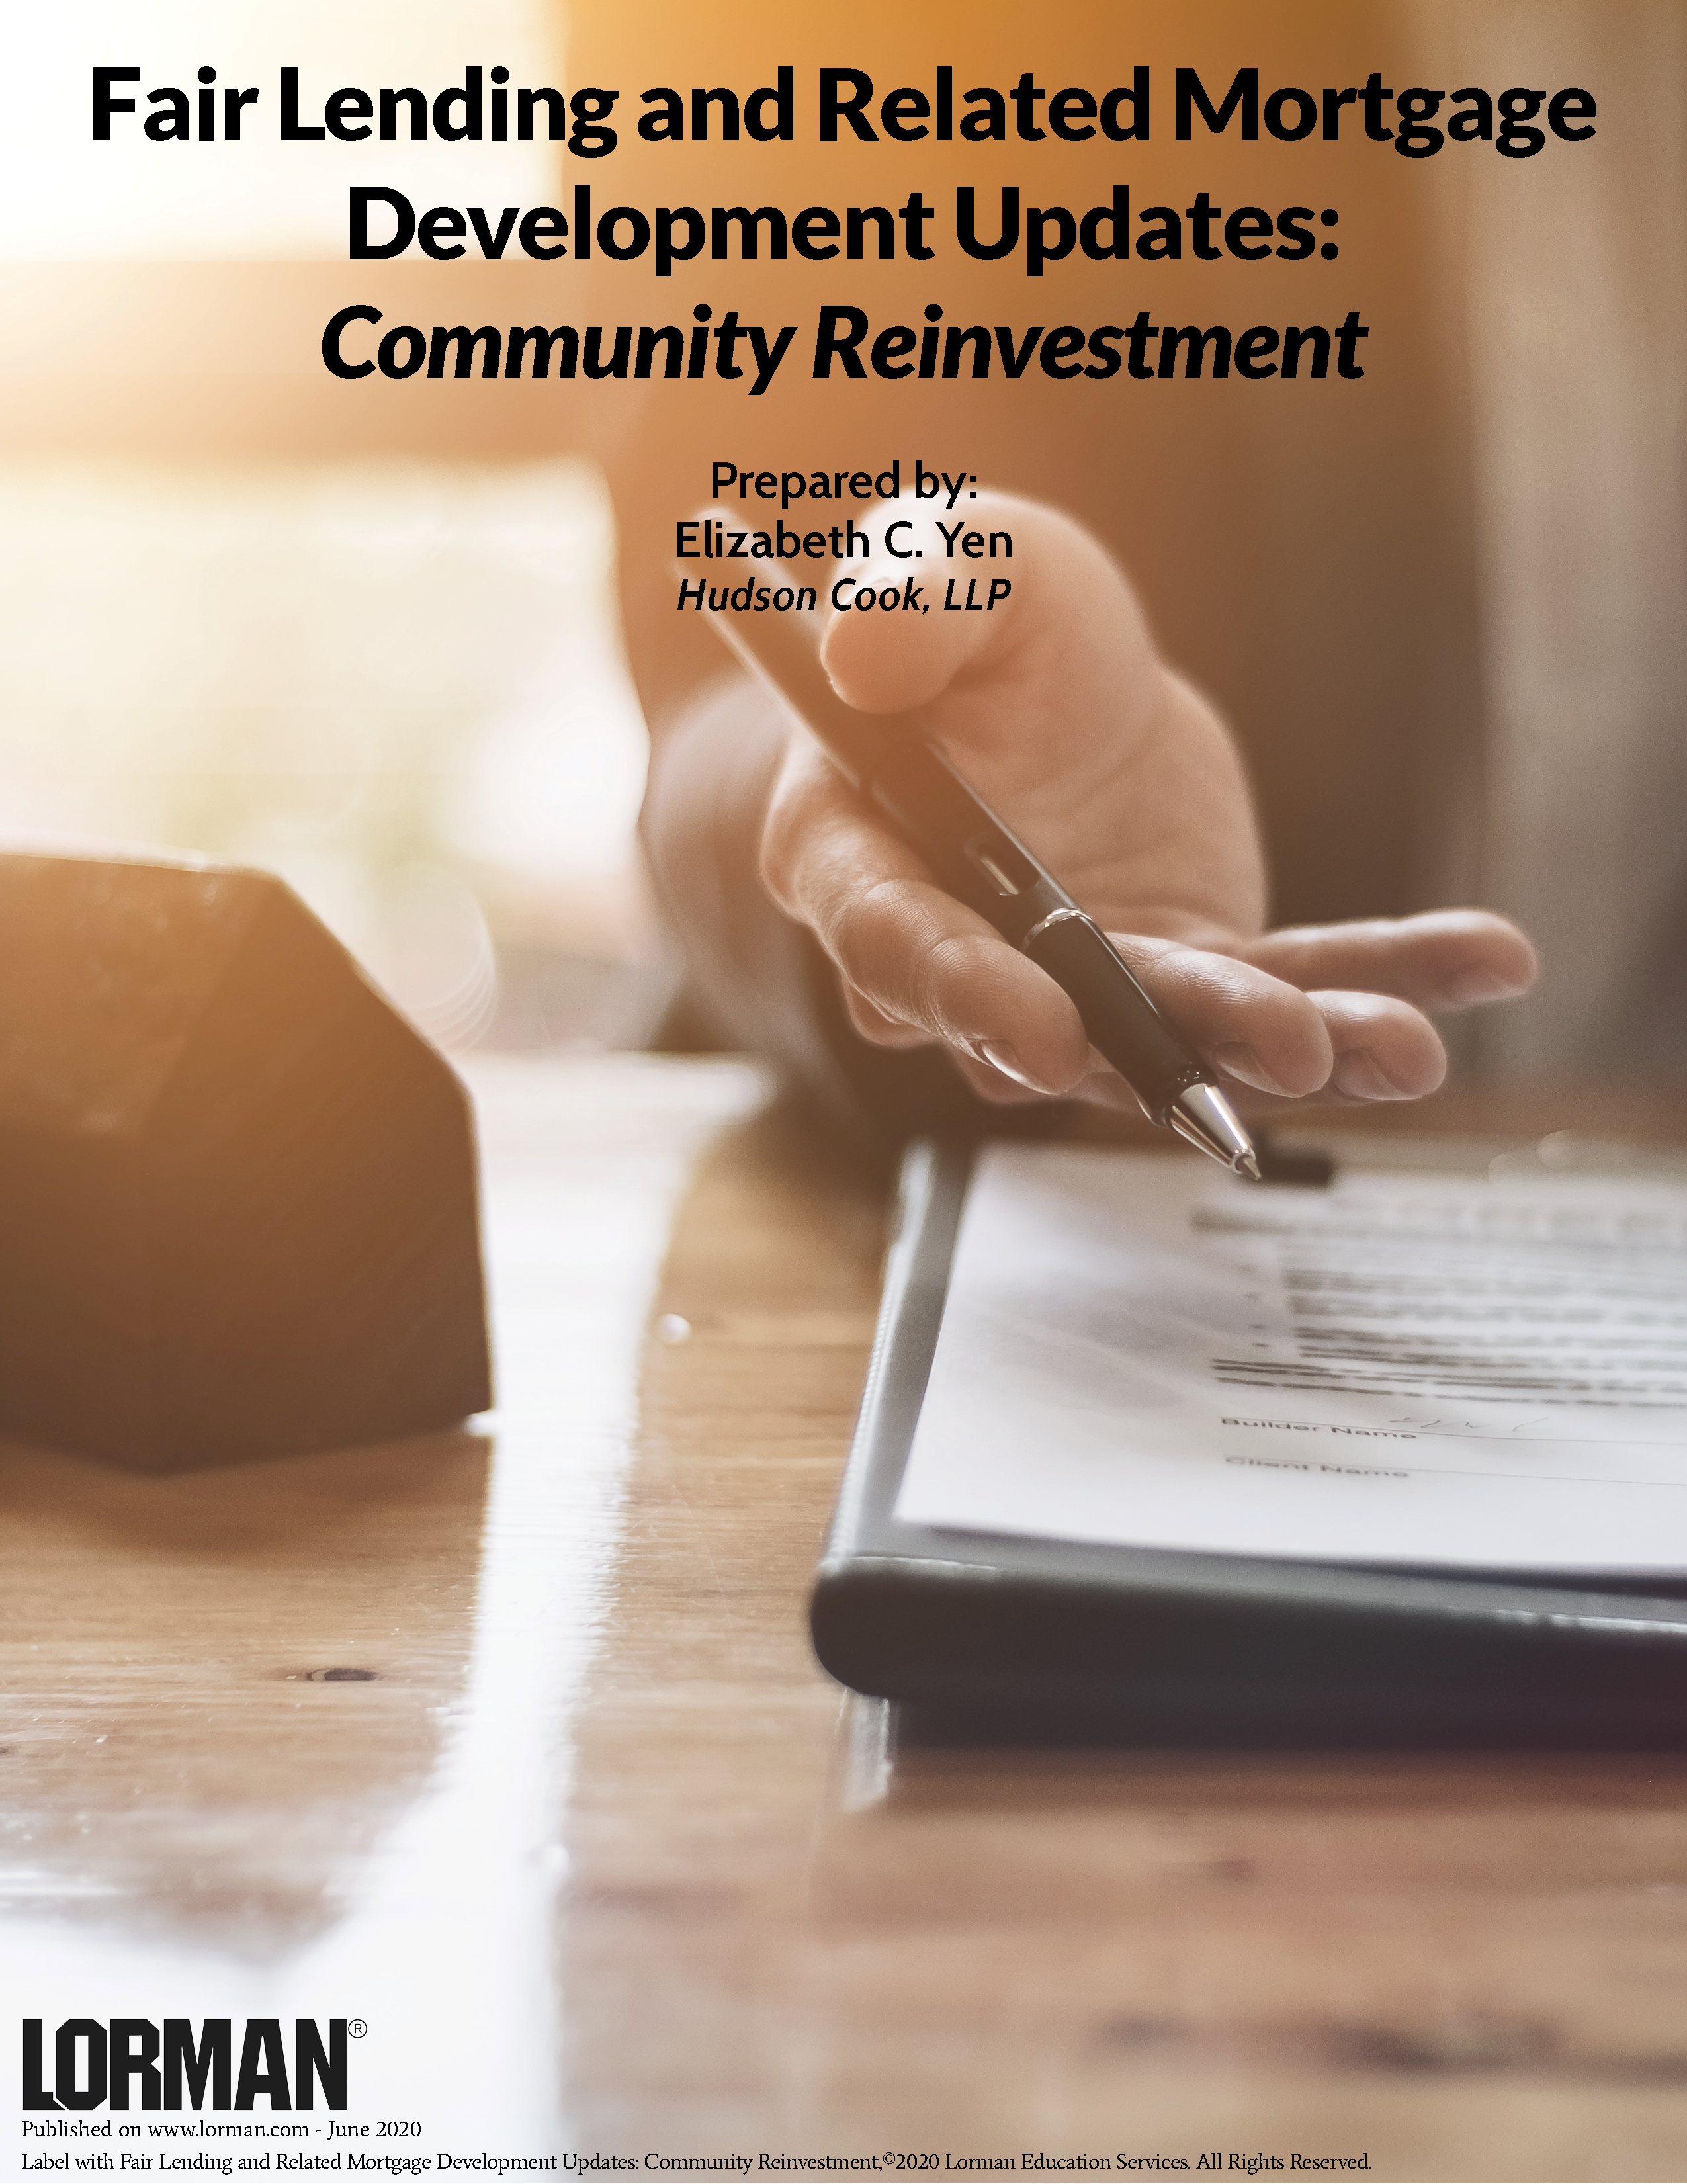 Fair Lending and Related Mortgage Development Updates: Community Reinvestment